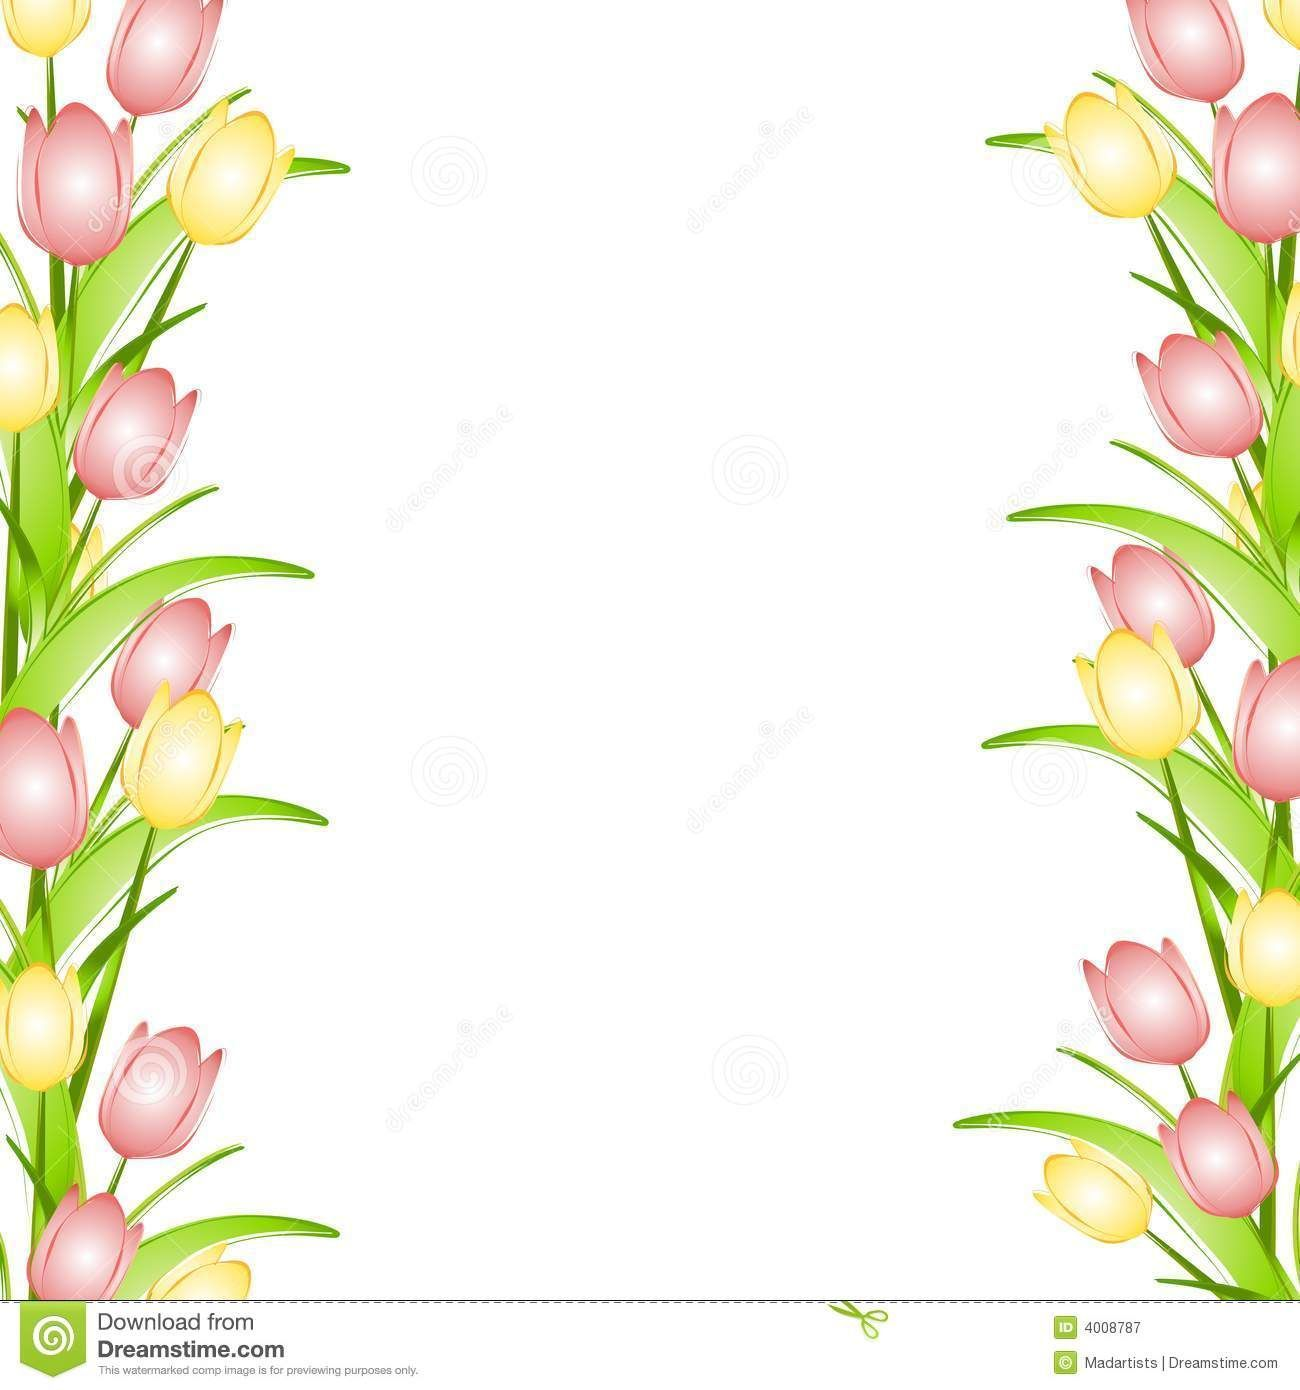 free spring borders and backgrounds - - Yahoo Image Search Results ... jpg stock